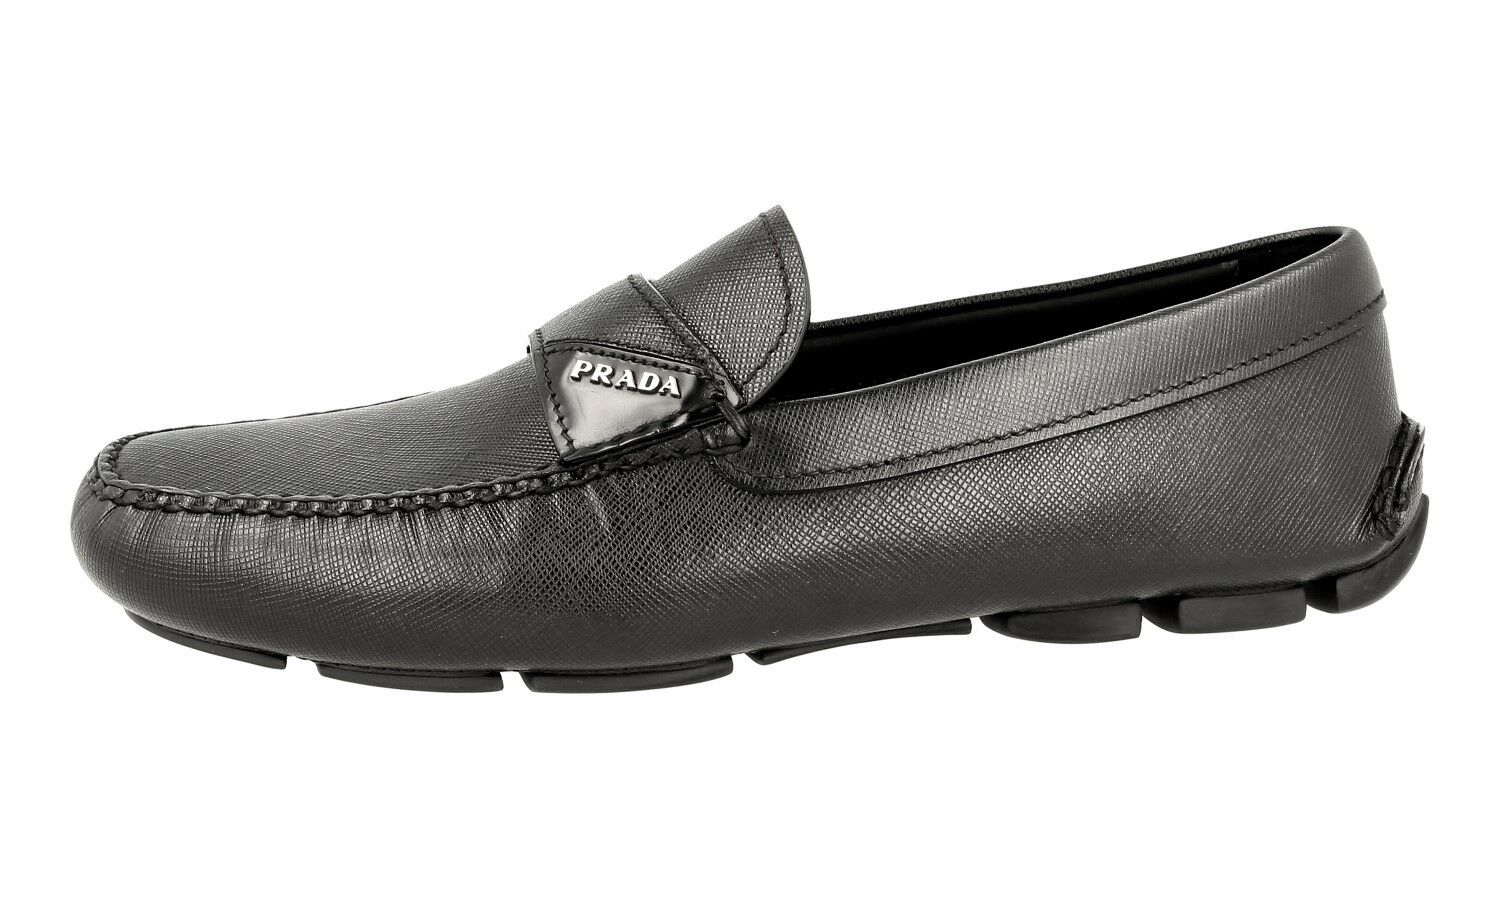 LUXURY PRADA SAFFIANO LOGO NEW LOAFER SHOES 2DD125 BLACK NEW LOGO US 7 e4cee5